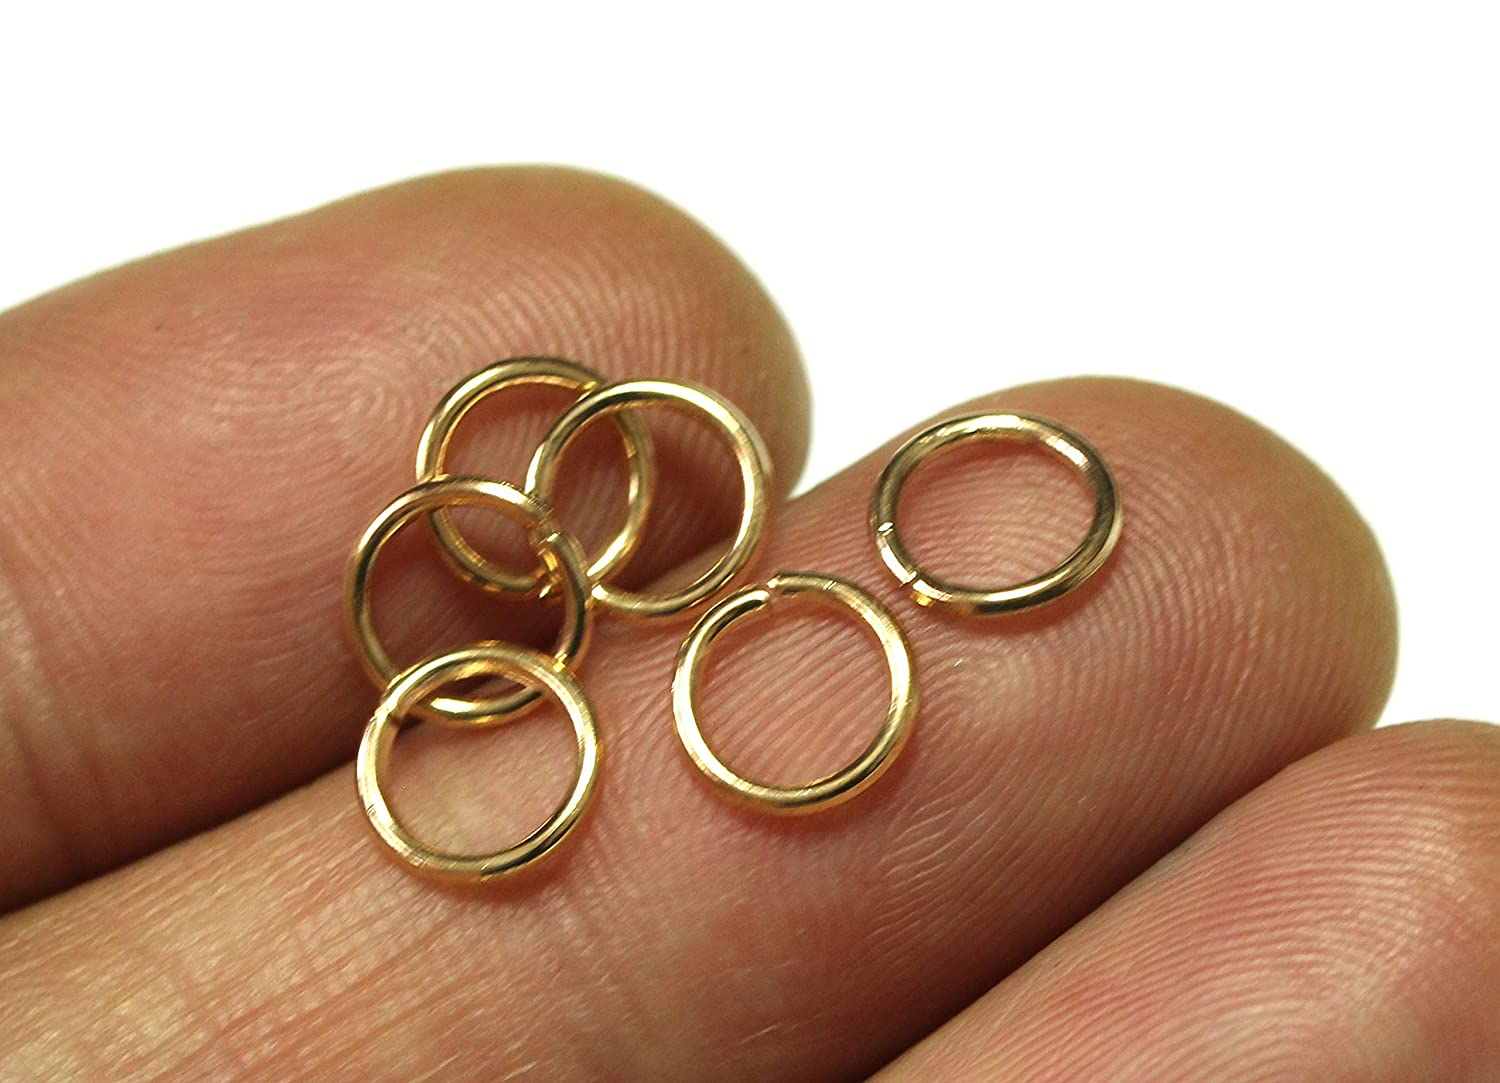 ALL in ONE 2000pcs Open Jump Rings Jewelry Making Gold 4mm